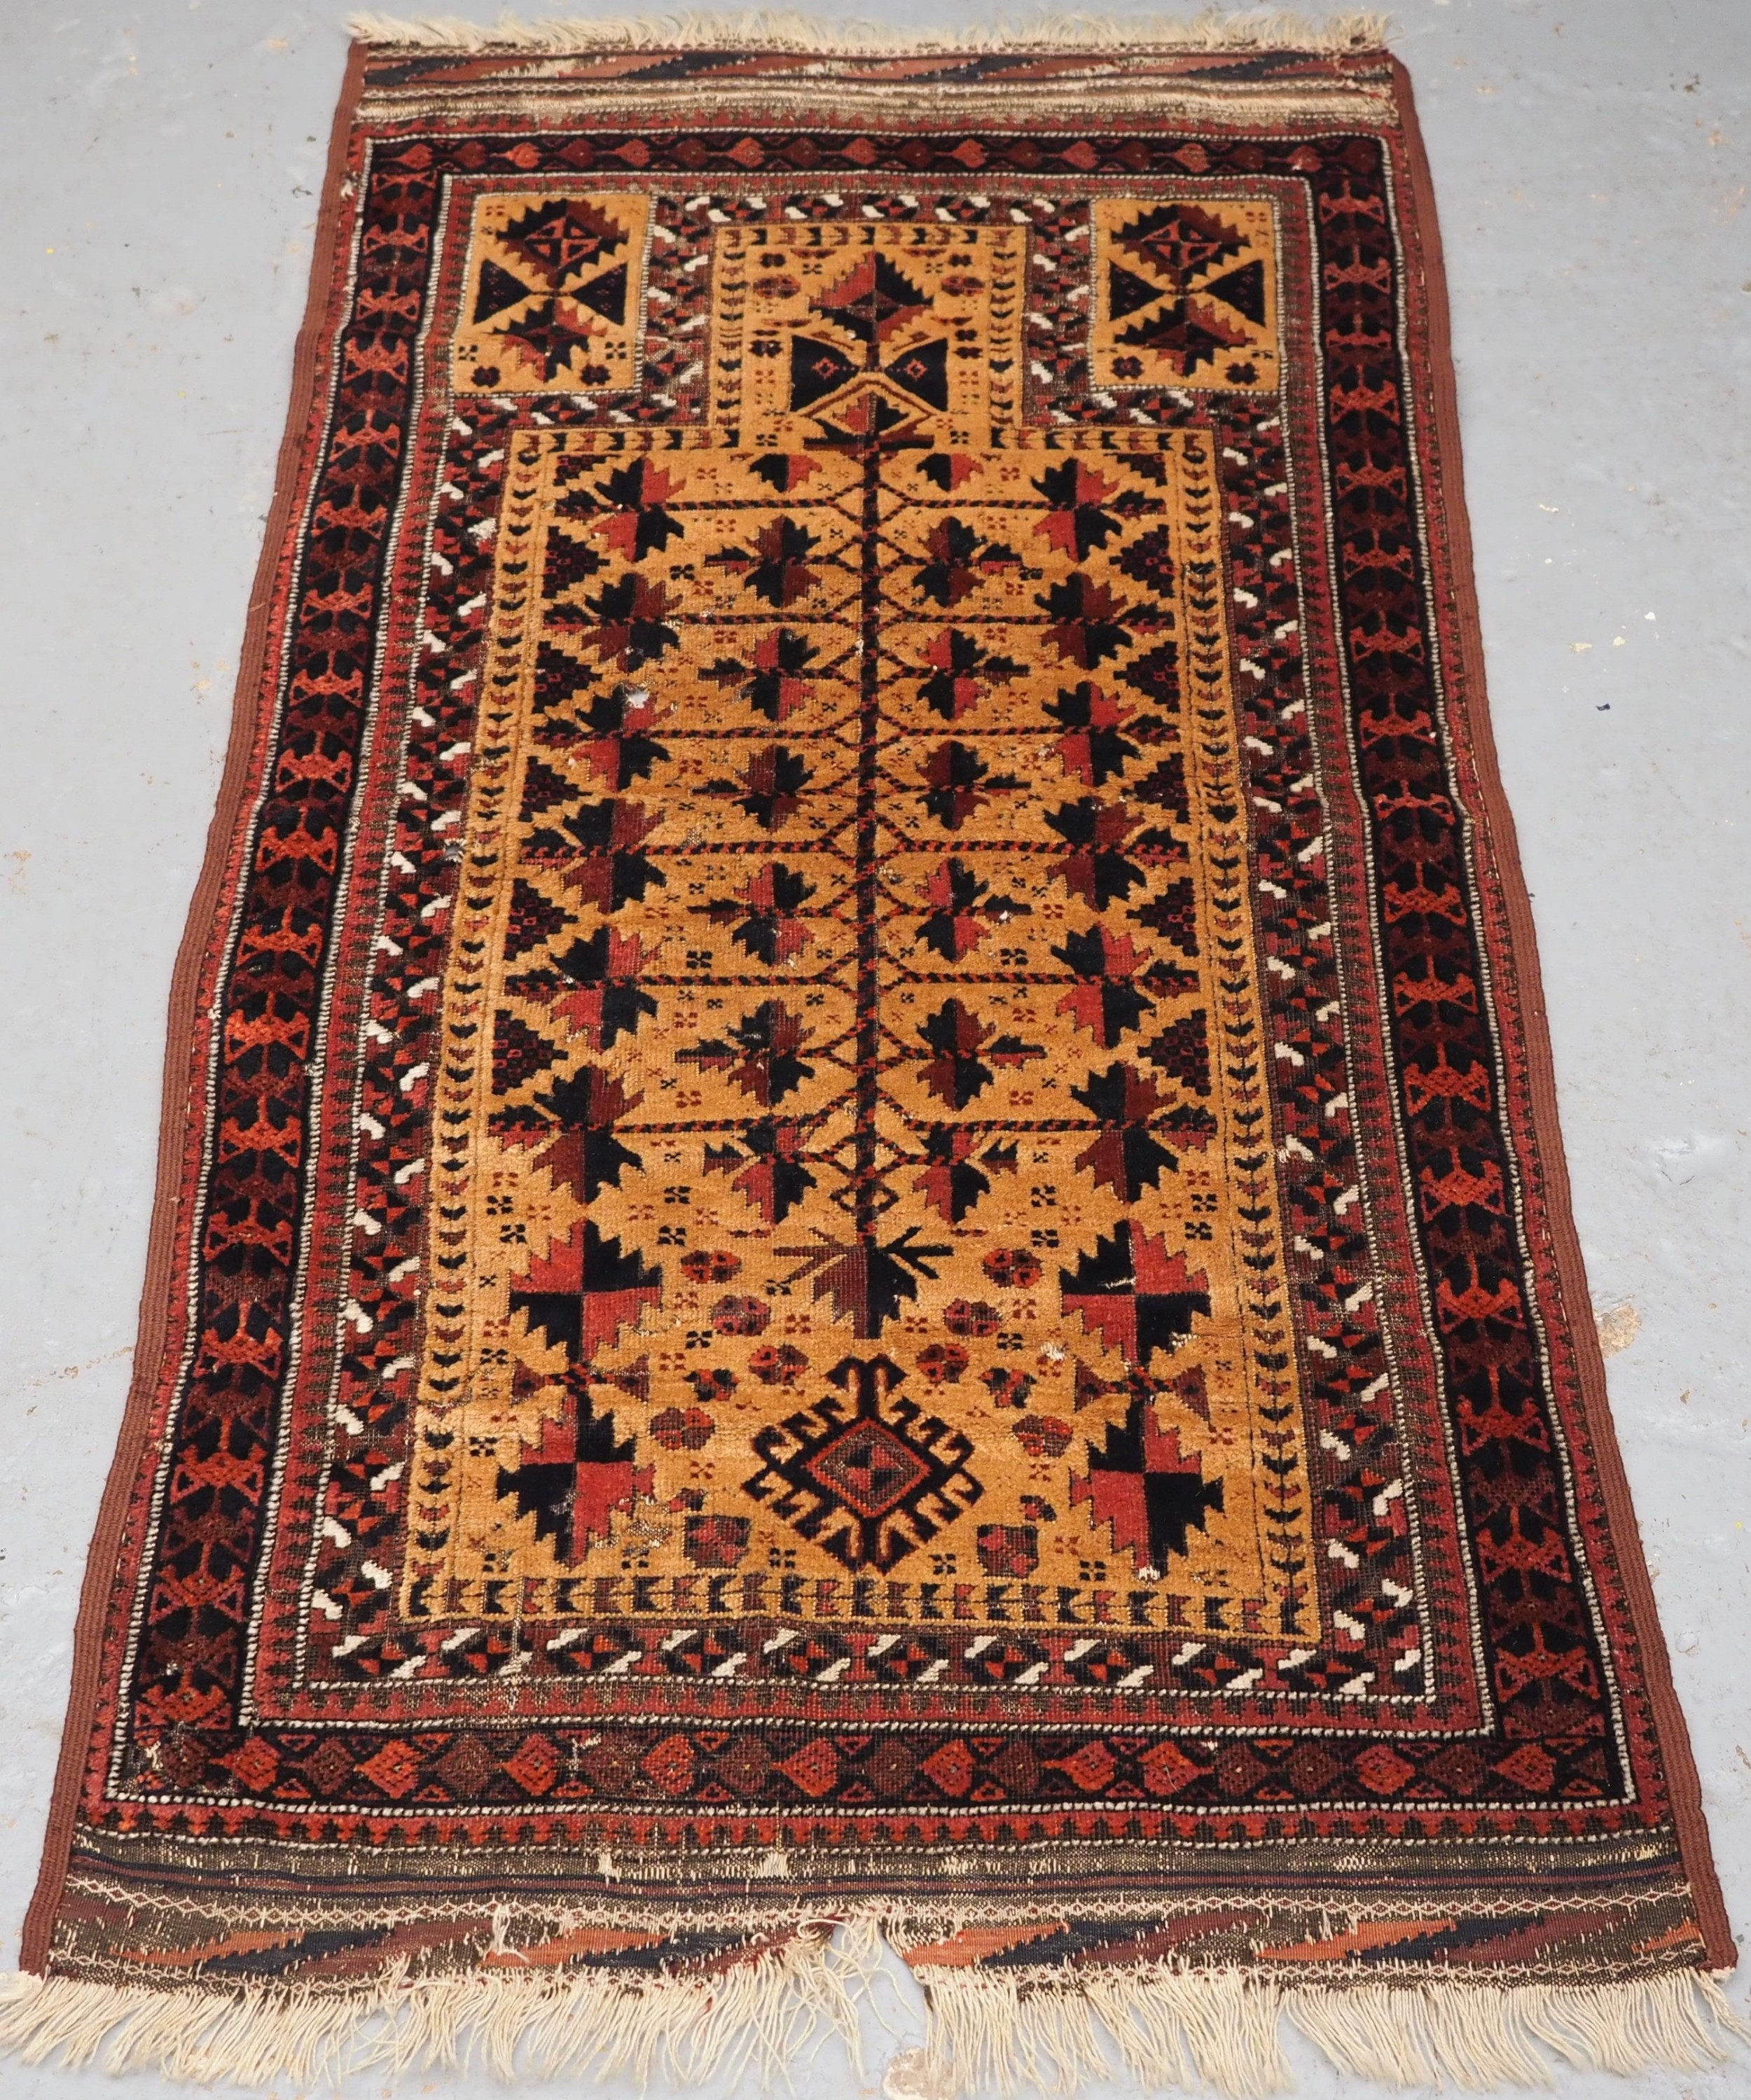 antique sarakh baluch prayer rug camel ground tree of life circa 1880